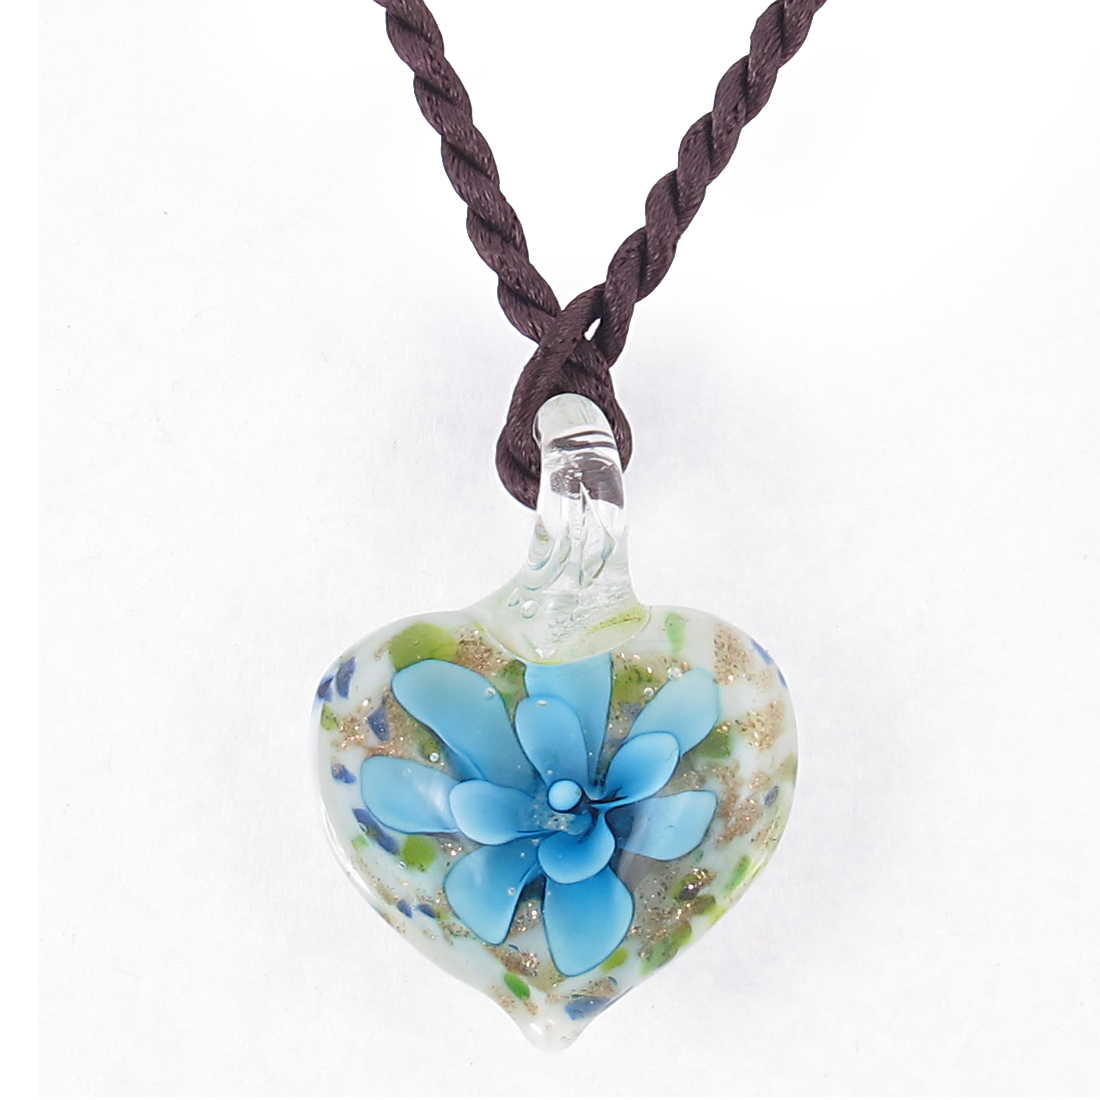 Lady Knot Closure Rope Floral Heart Glass Pendant Necklace Adornment Light Bue